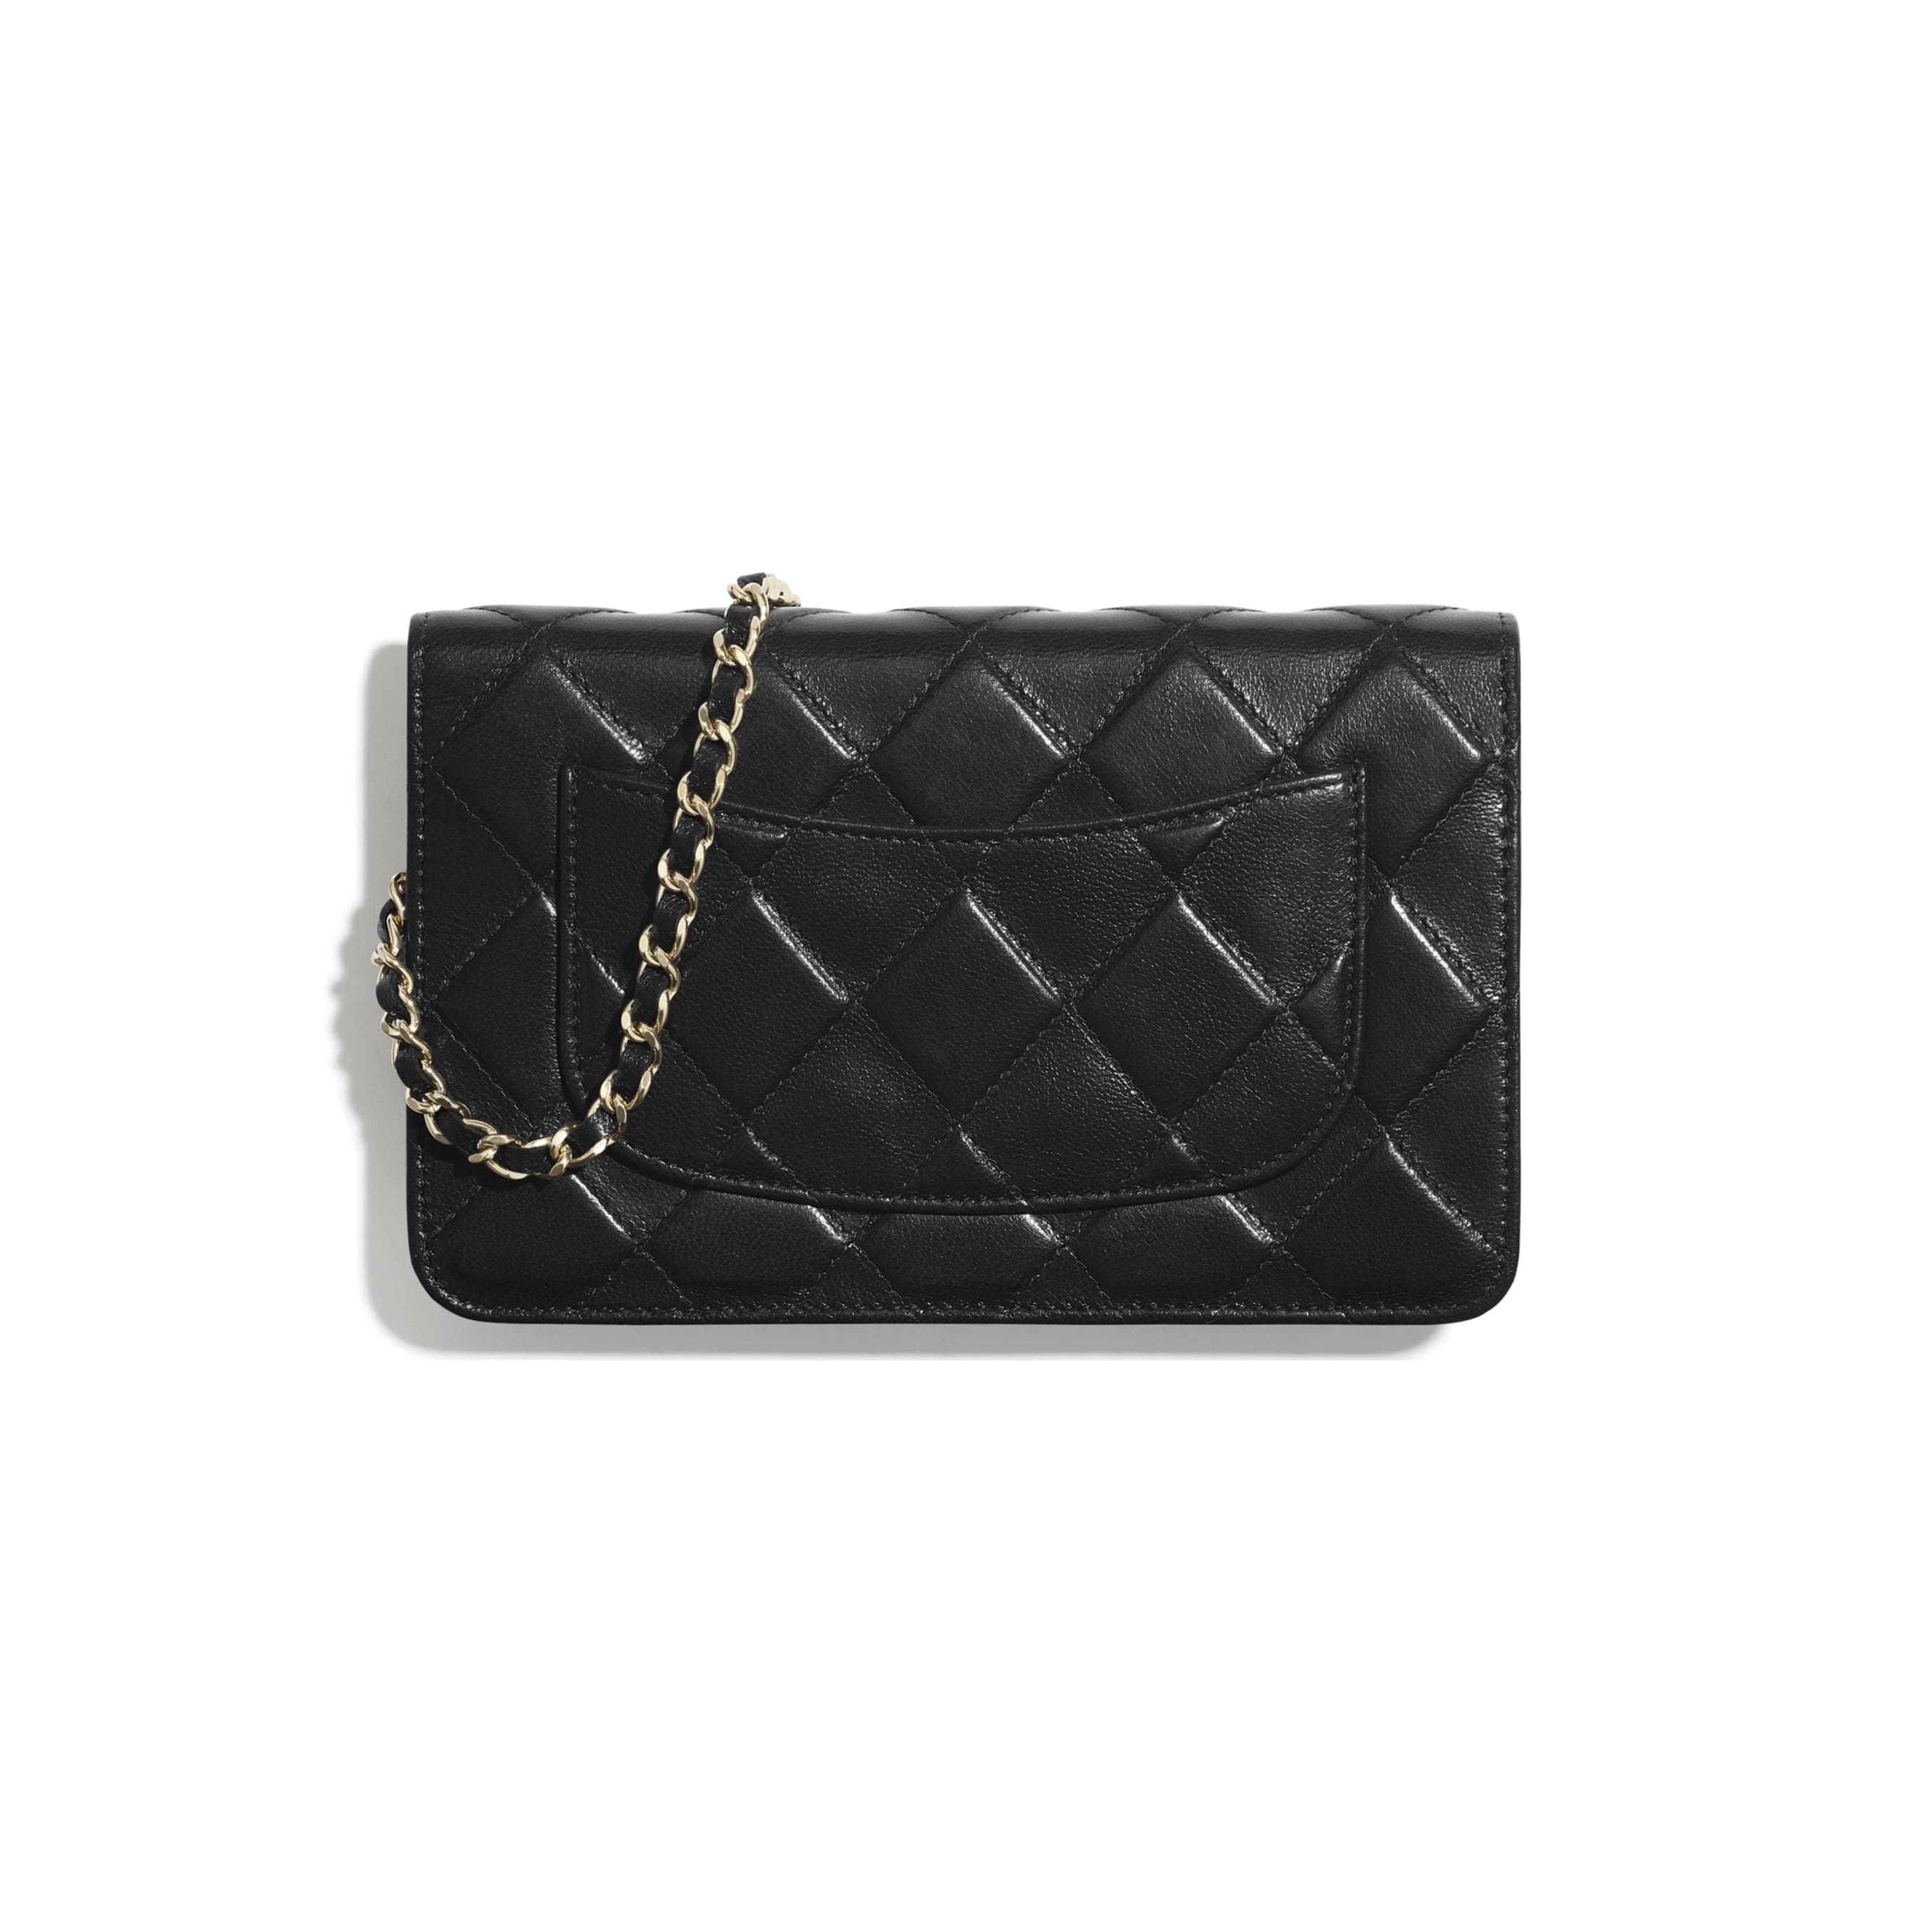 Wallet On Chain - Black - Shiny Crumpled Goatskin & Gold-Tone Metal - CHANEL - Alternative view - see standard sized version